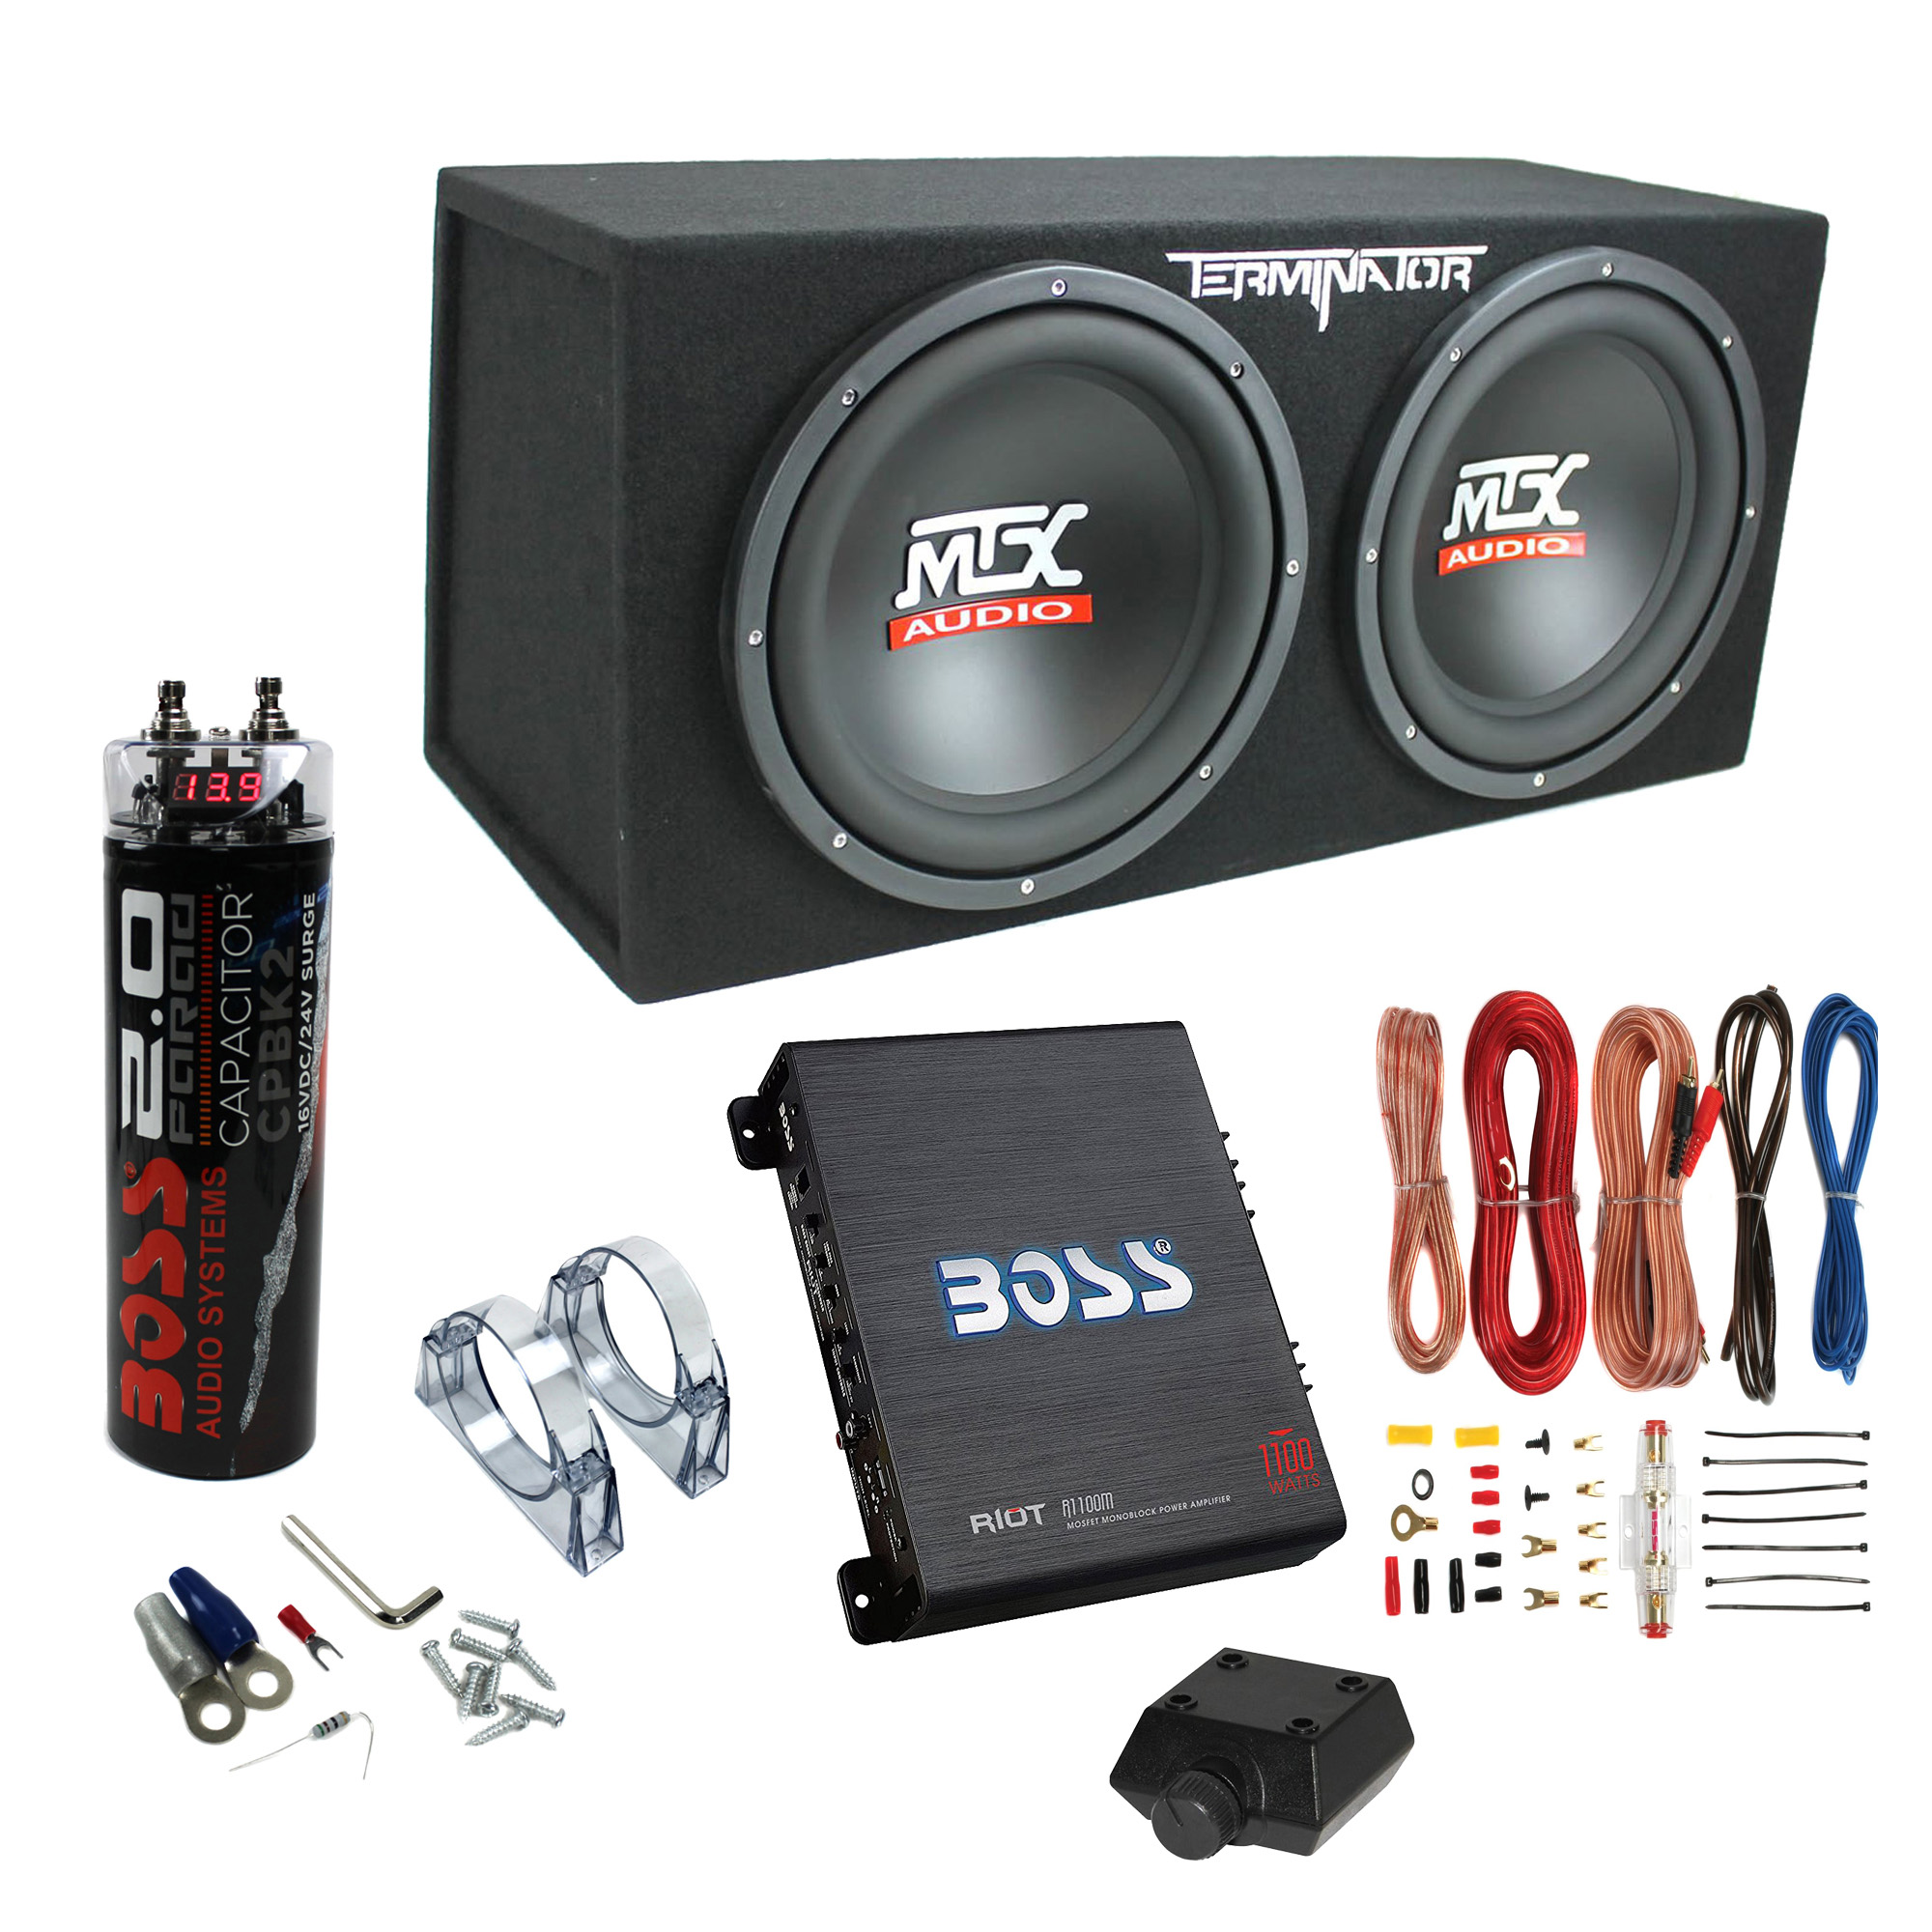 "Mtx Audio TNE212D 12"" 1200W Dual Loaded Subwoofer Box + 1100W Amplifier + Capacitor"